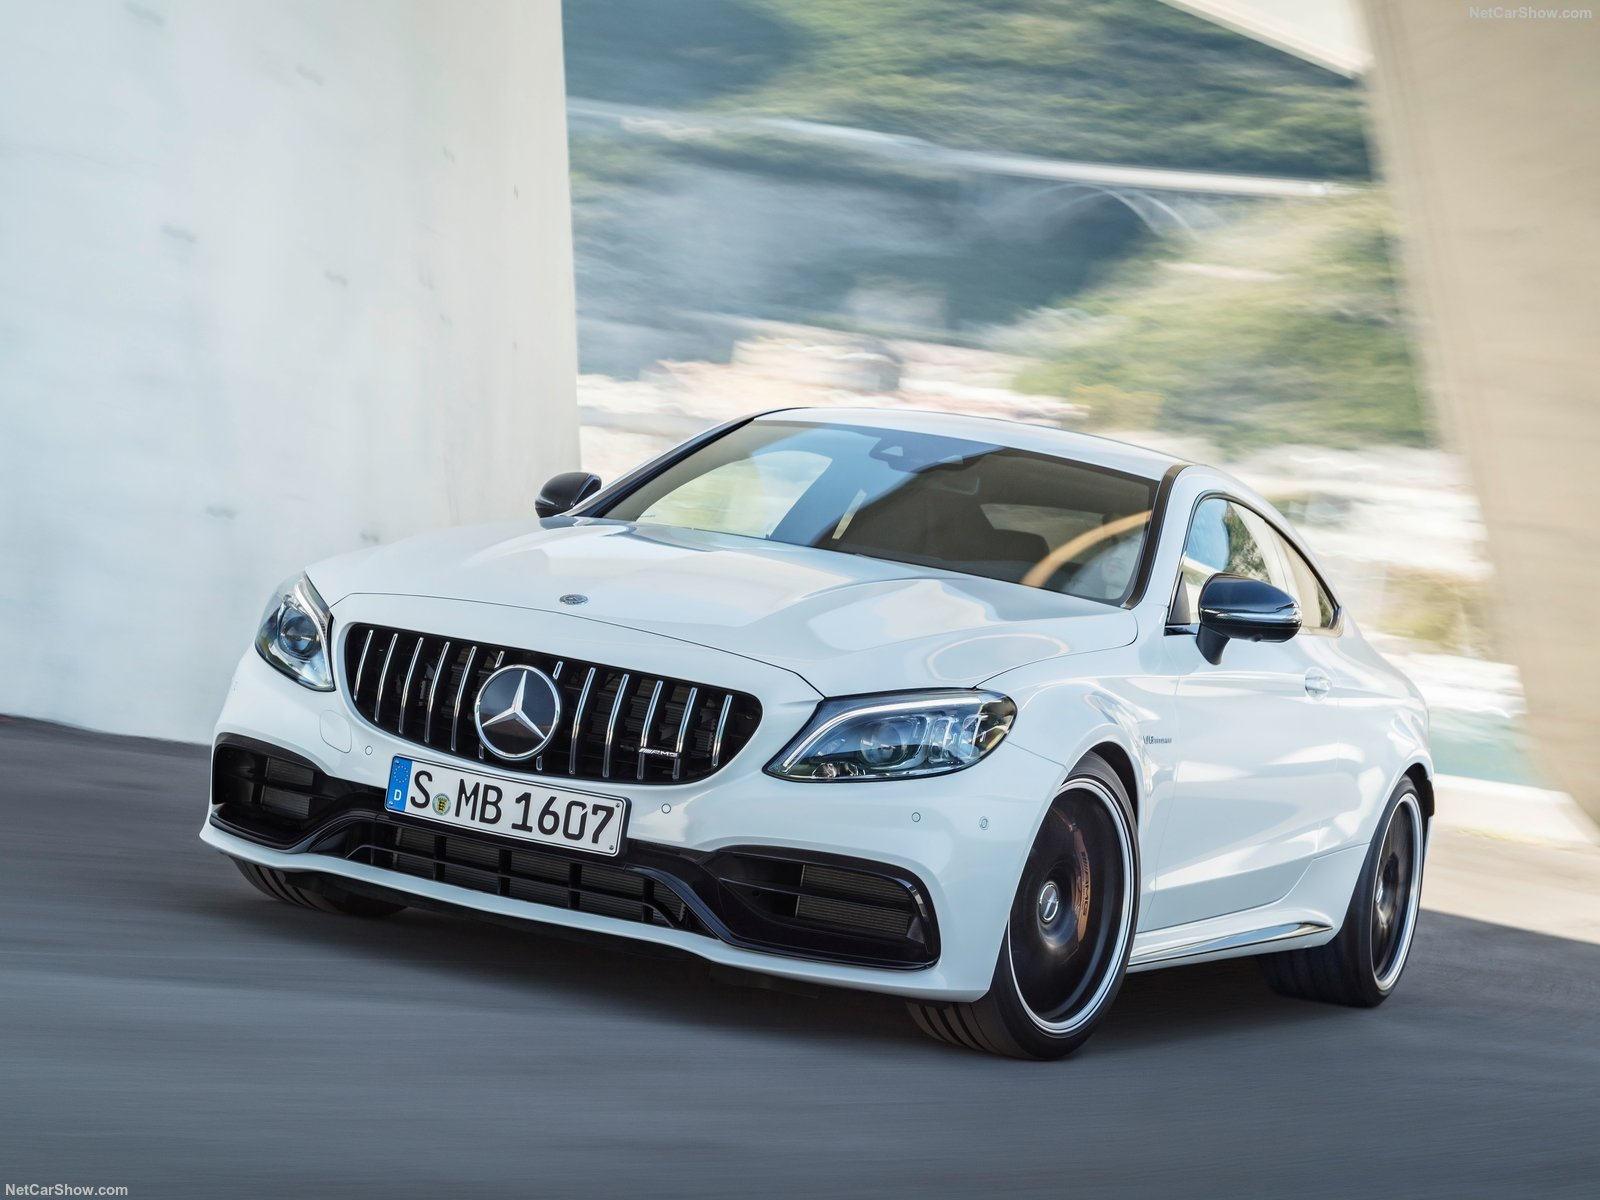 Mercedes-Benz C63 S AMG Coupe photo 187370